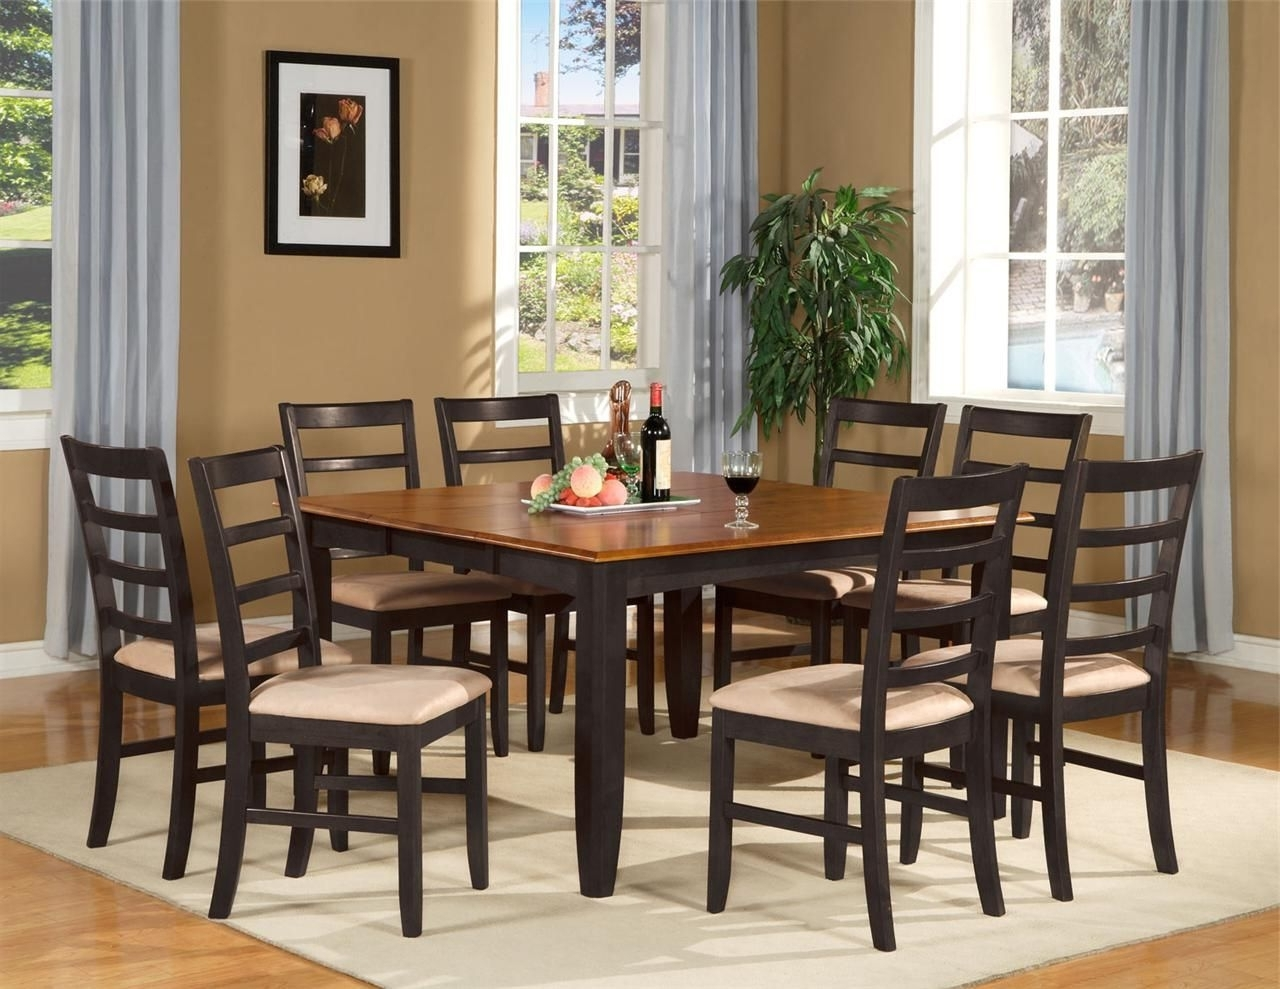 Trendy Dining Table Designs For A Stylish Dining Room – Home Decor Ideas With Most Current 8 Dining Tables (View 21 of 25)